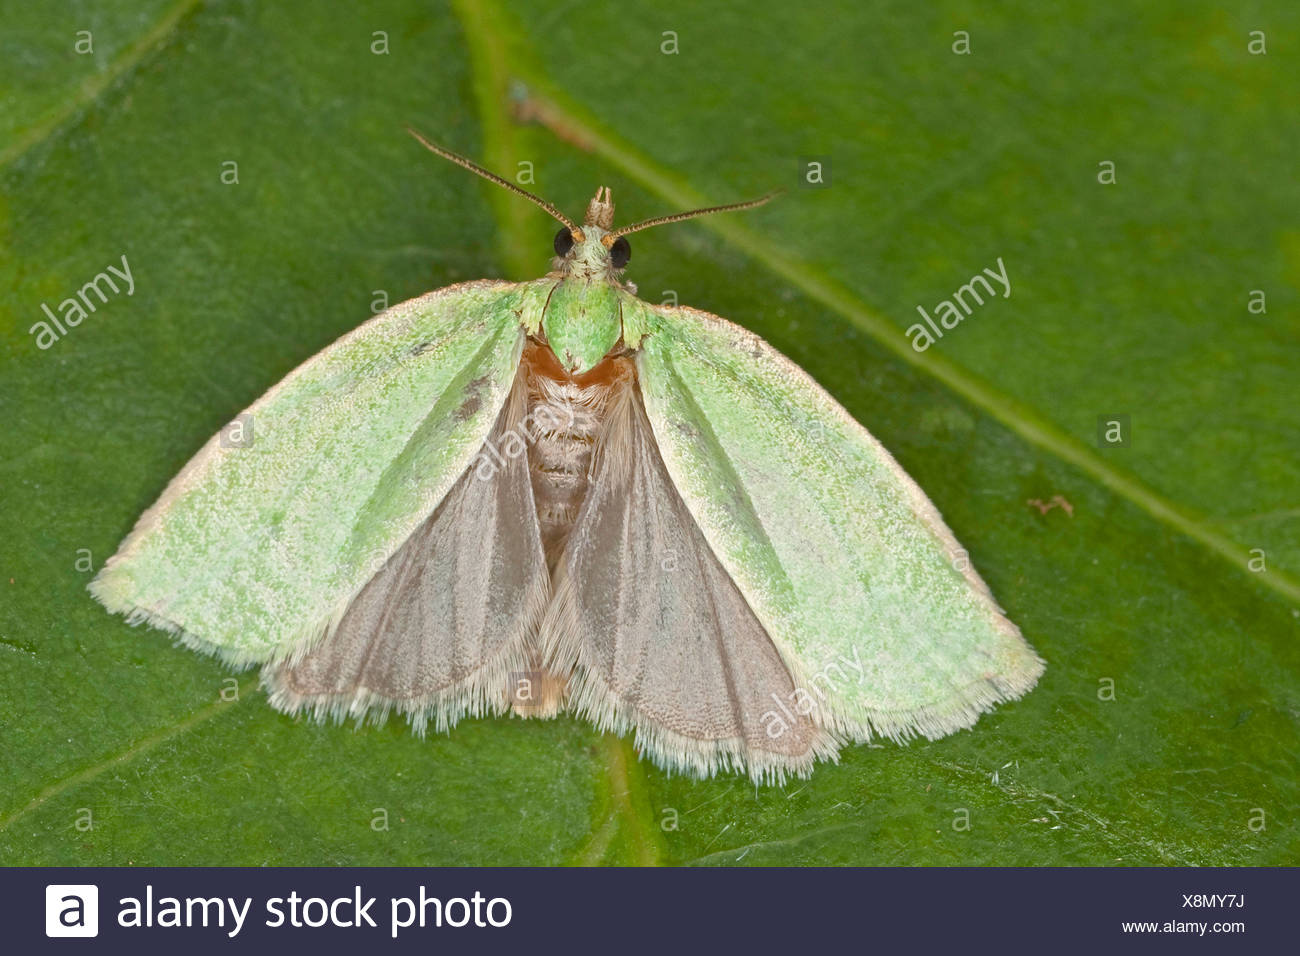 pea-green oak curl, green oak tortrix, oak leafroller, green oak roller, oak tortrix (Tortrix viridana), sitting on a leaf , Germany - Stock Image